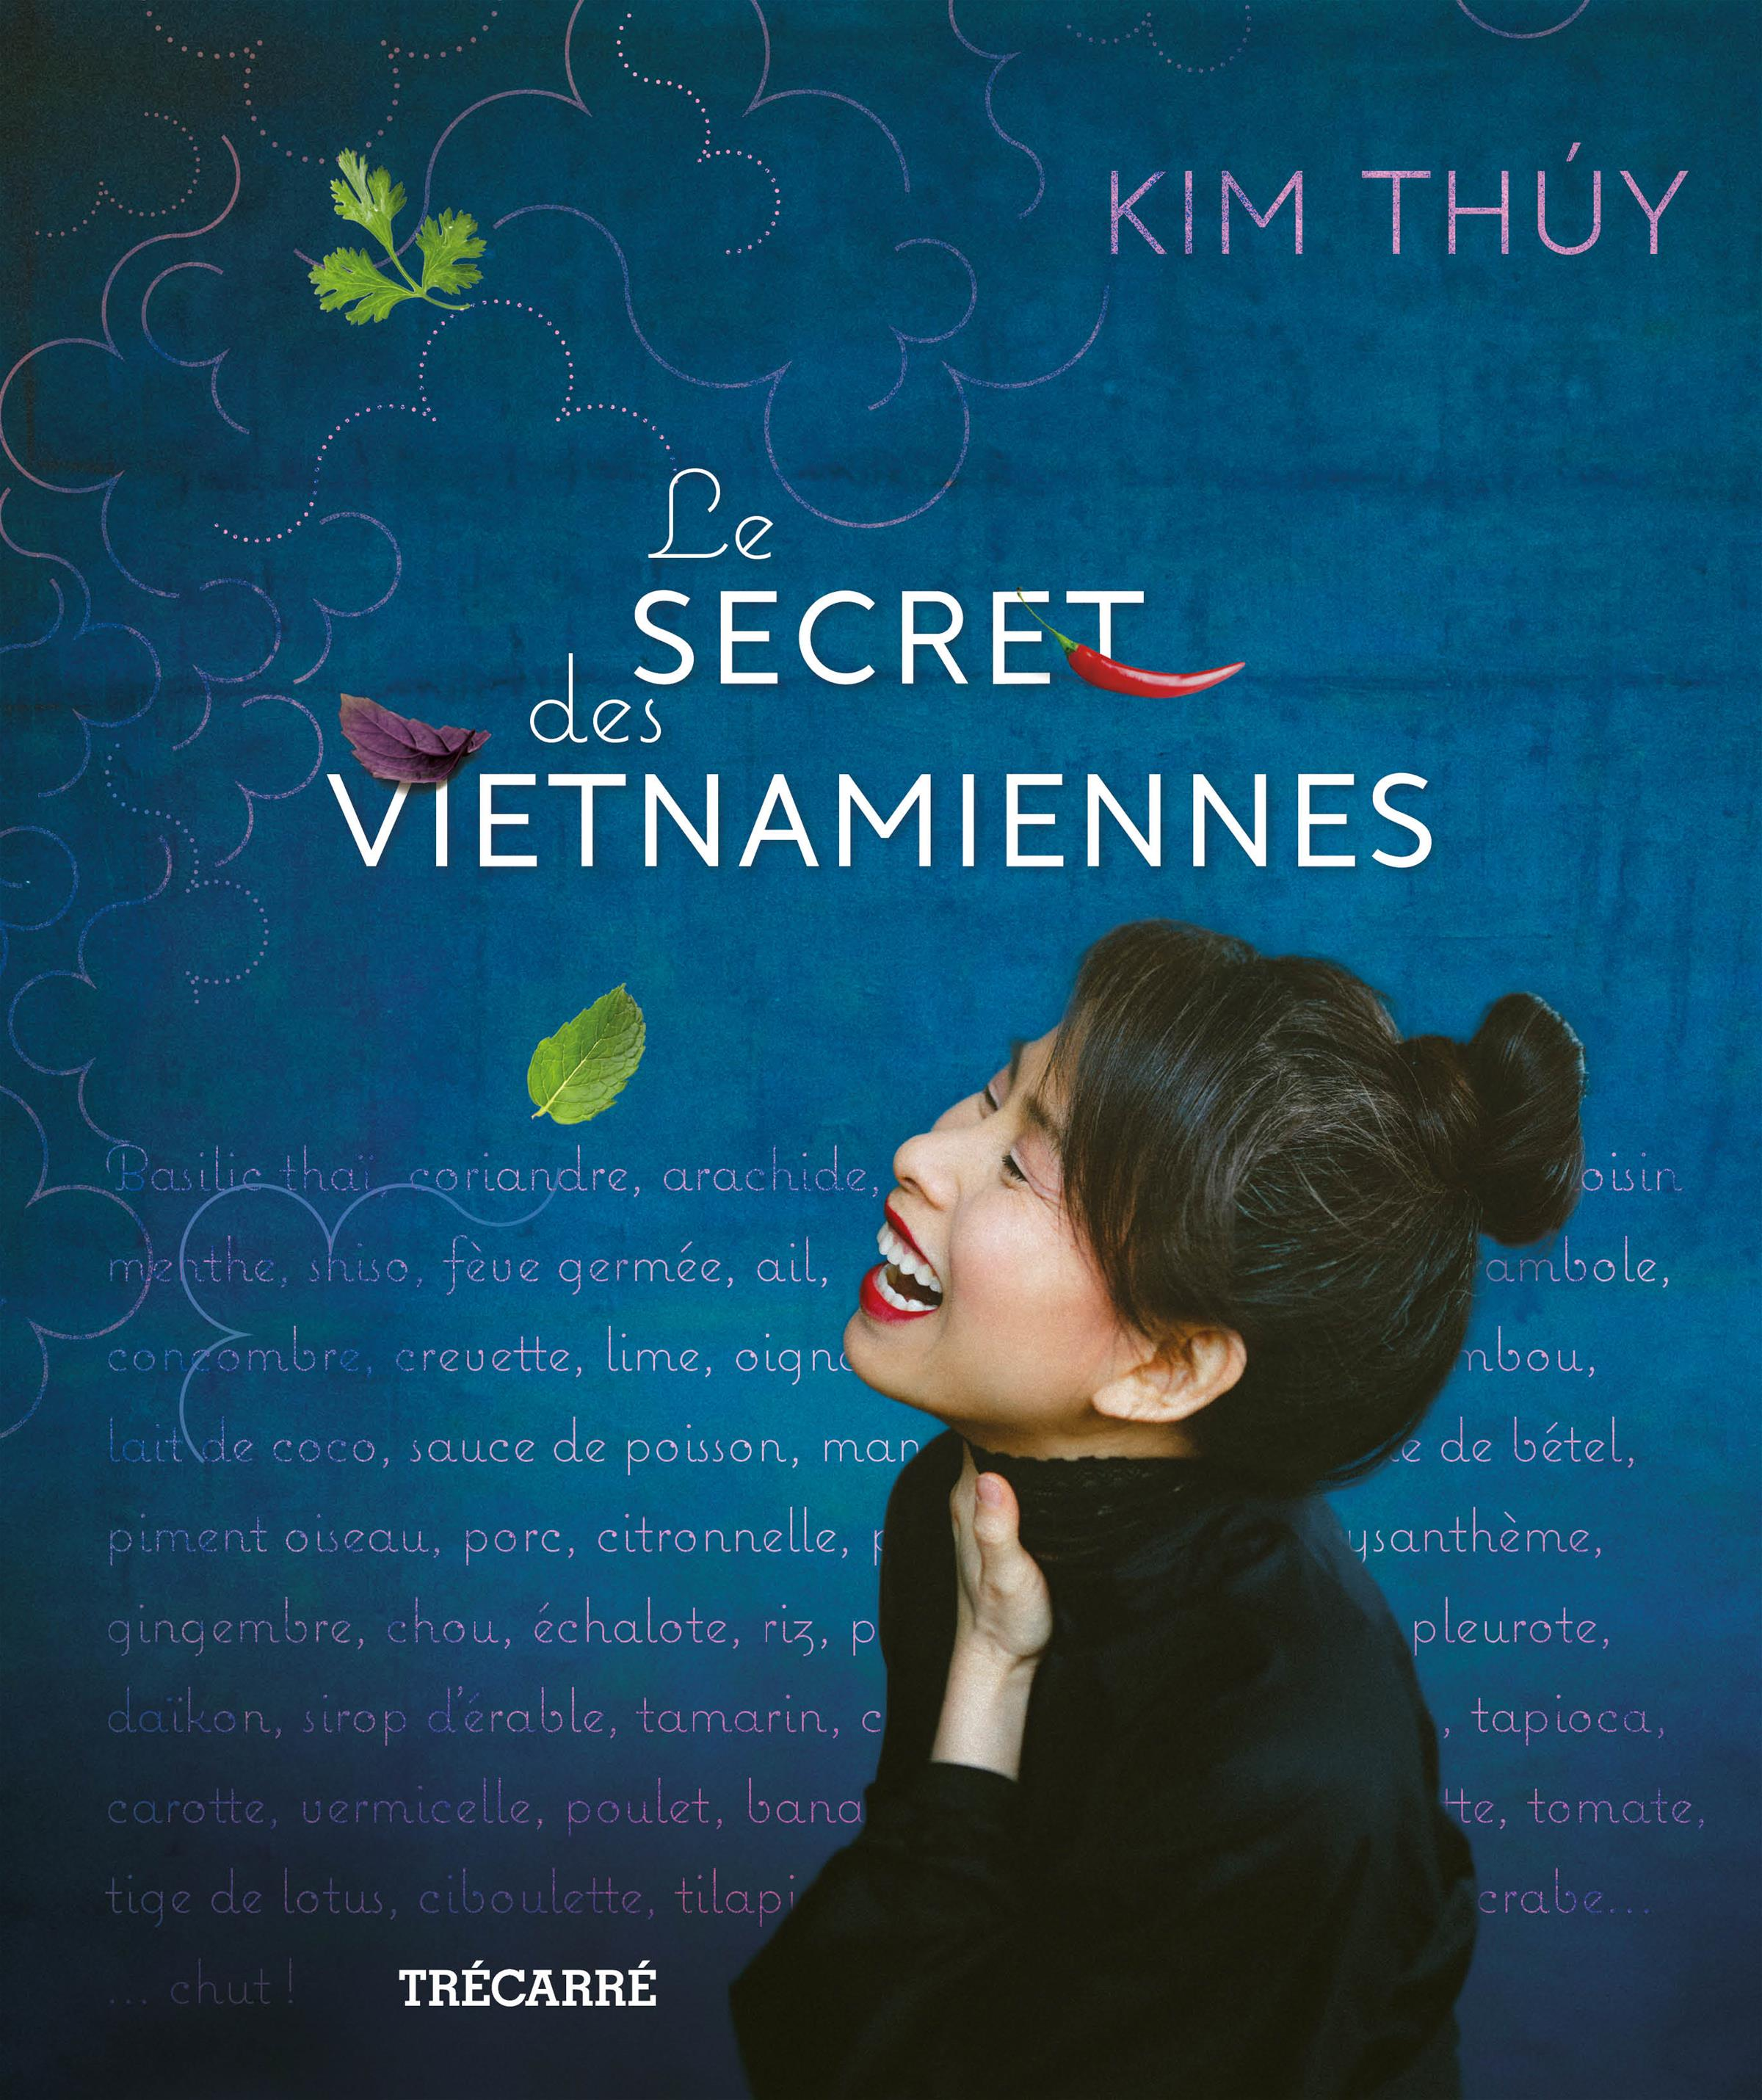 Le Secret des Vietnamiennes